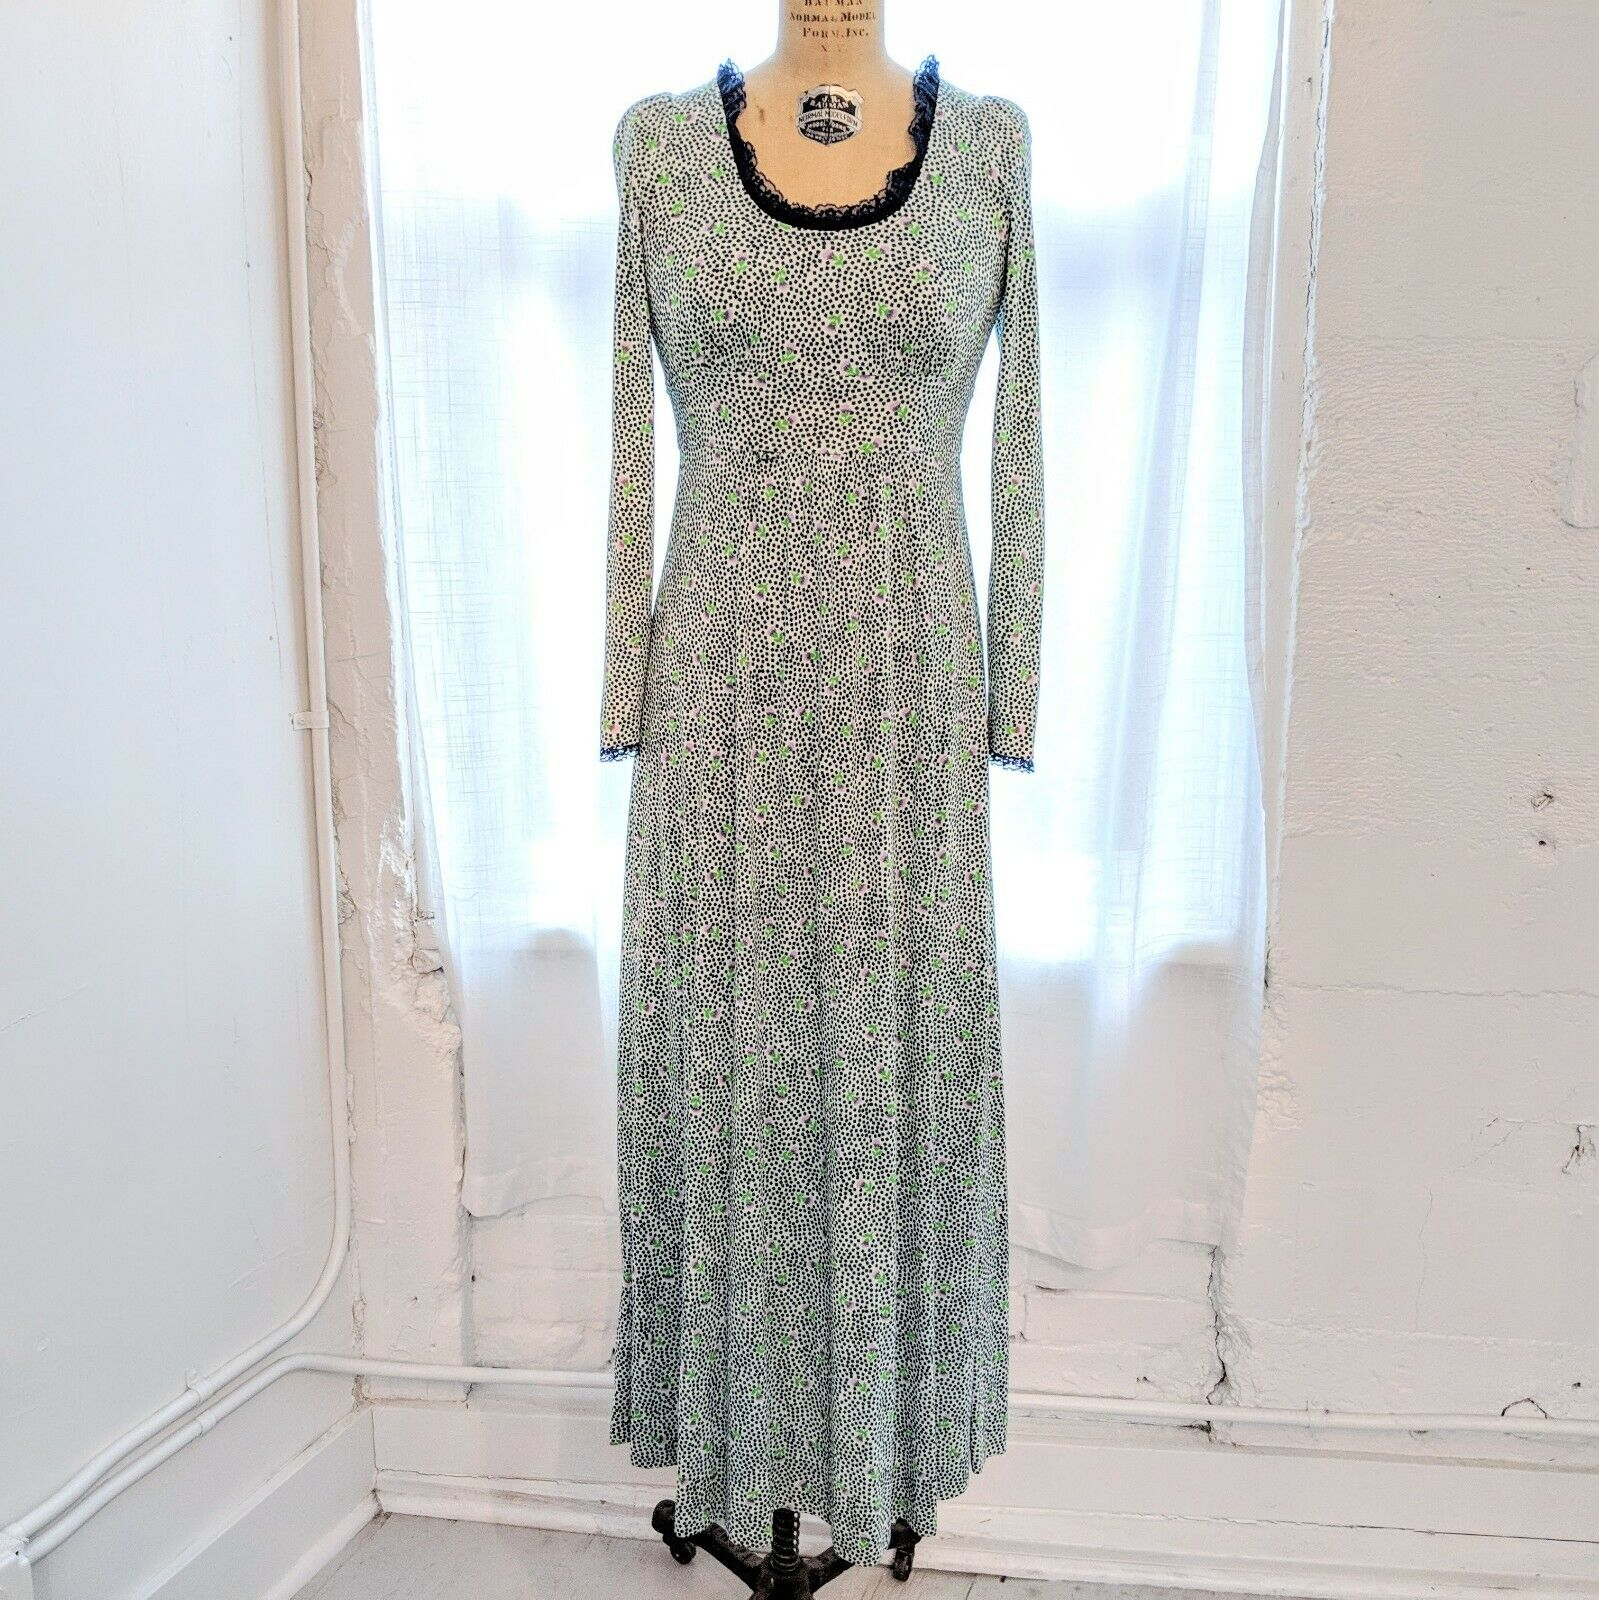 Vintage Phase II Navy Purple & Green Floral Print & Maxi Dress Size (XS) GOOD